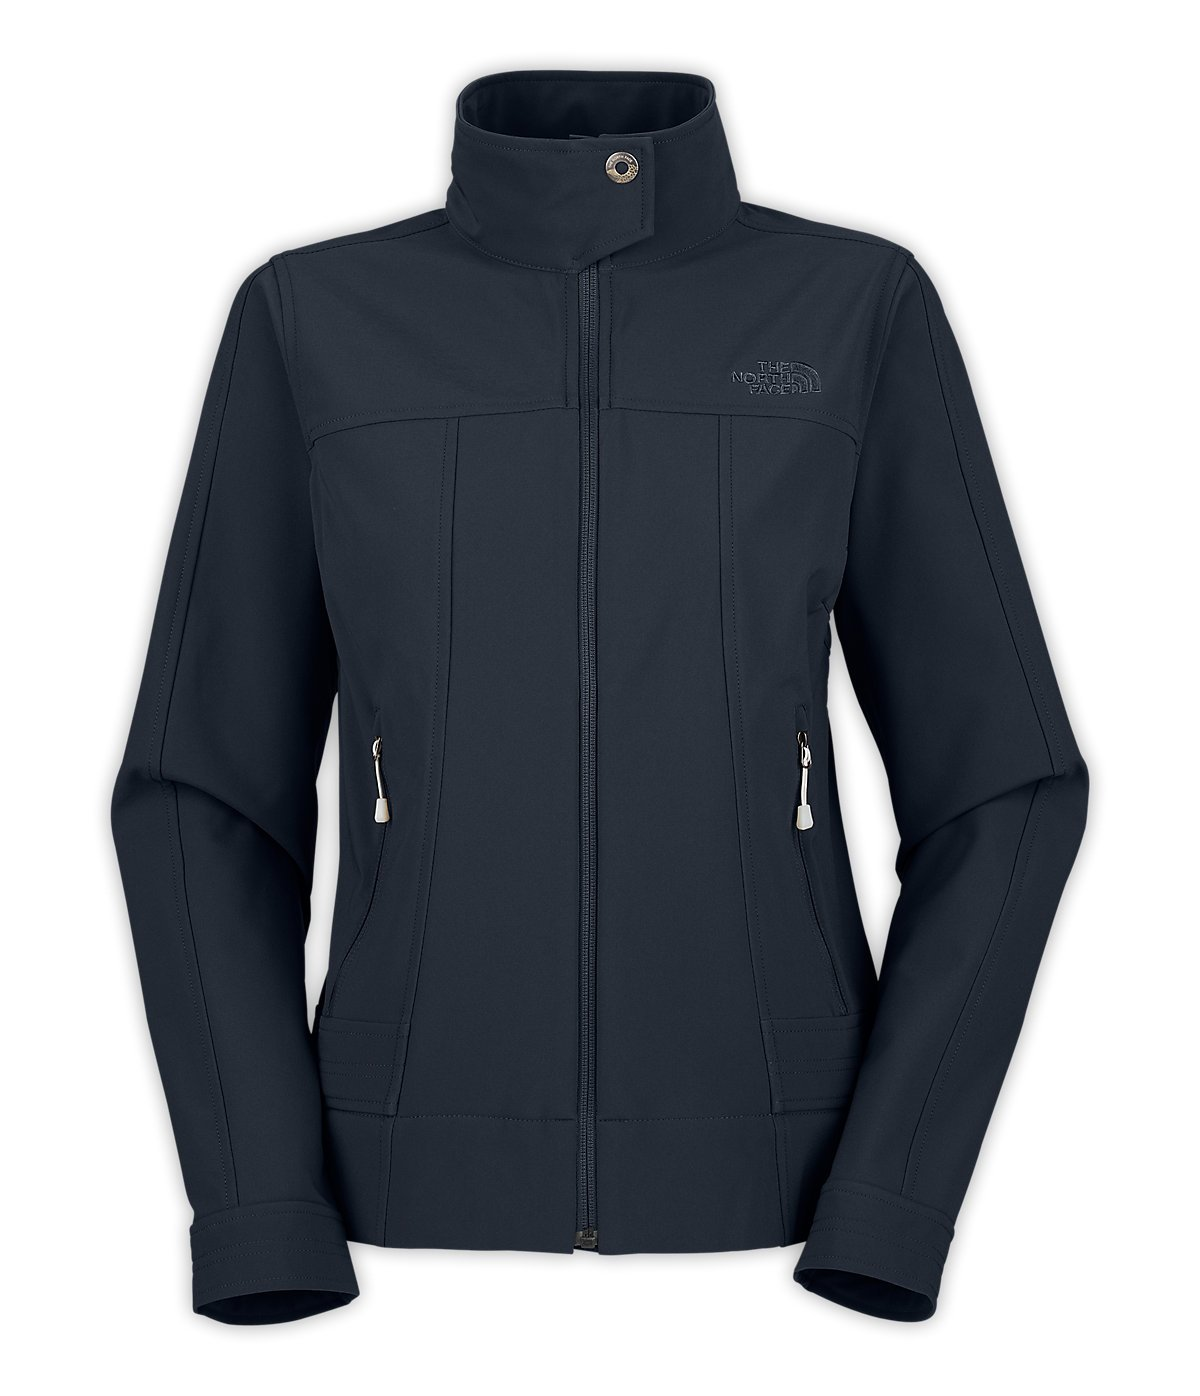 The North Face Omni Jacket Style: AQBL-7J3 Size: XL by The North Face